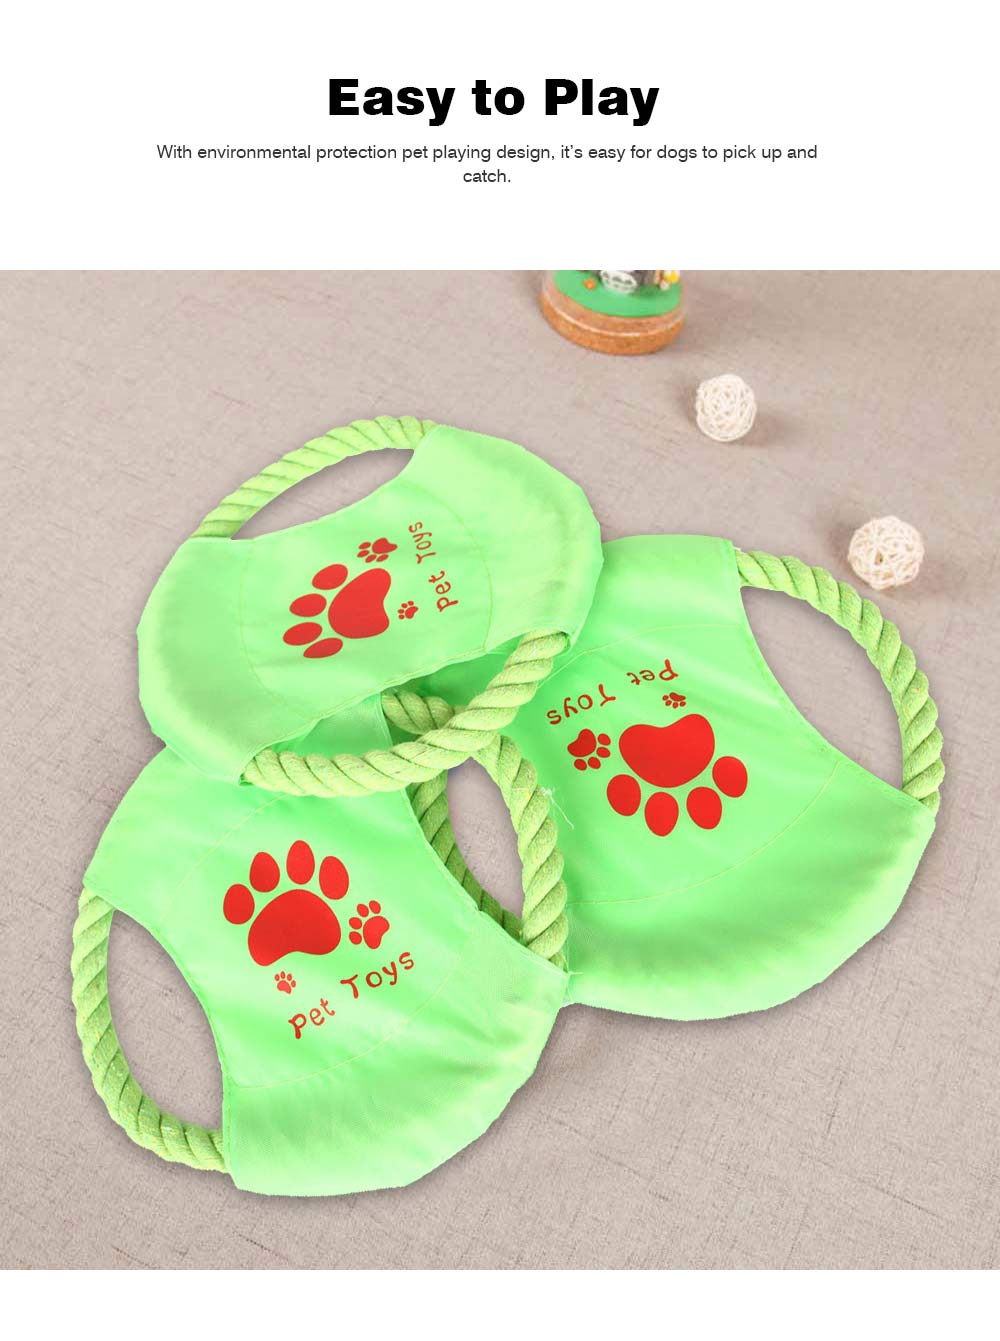 Big Dog Cotton Rope Toy Pet Frisbee, Wear-resistant for Pet Interaction Training Molars Outdoors 5